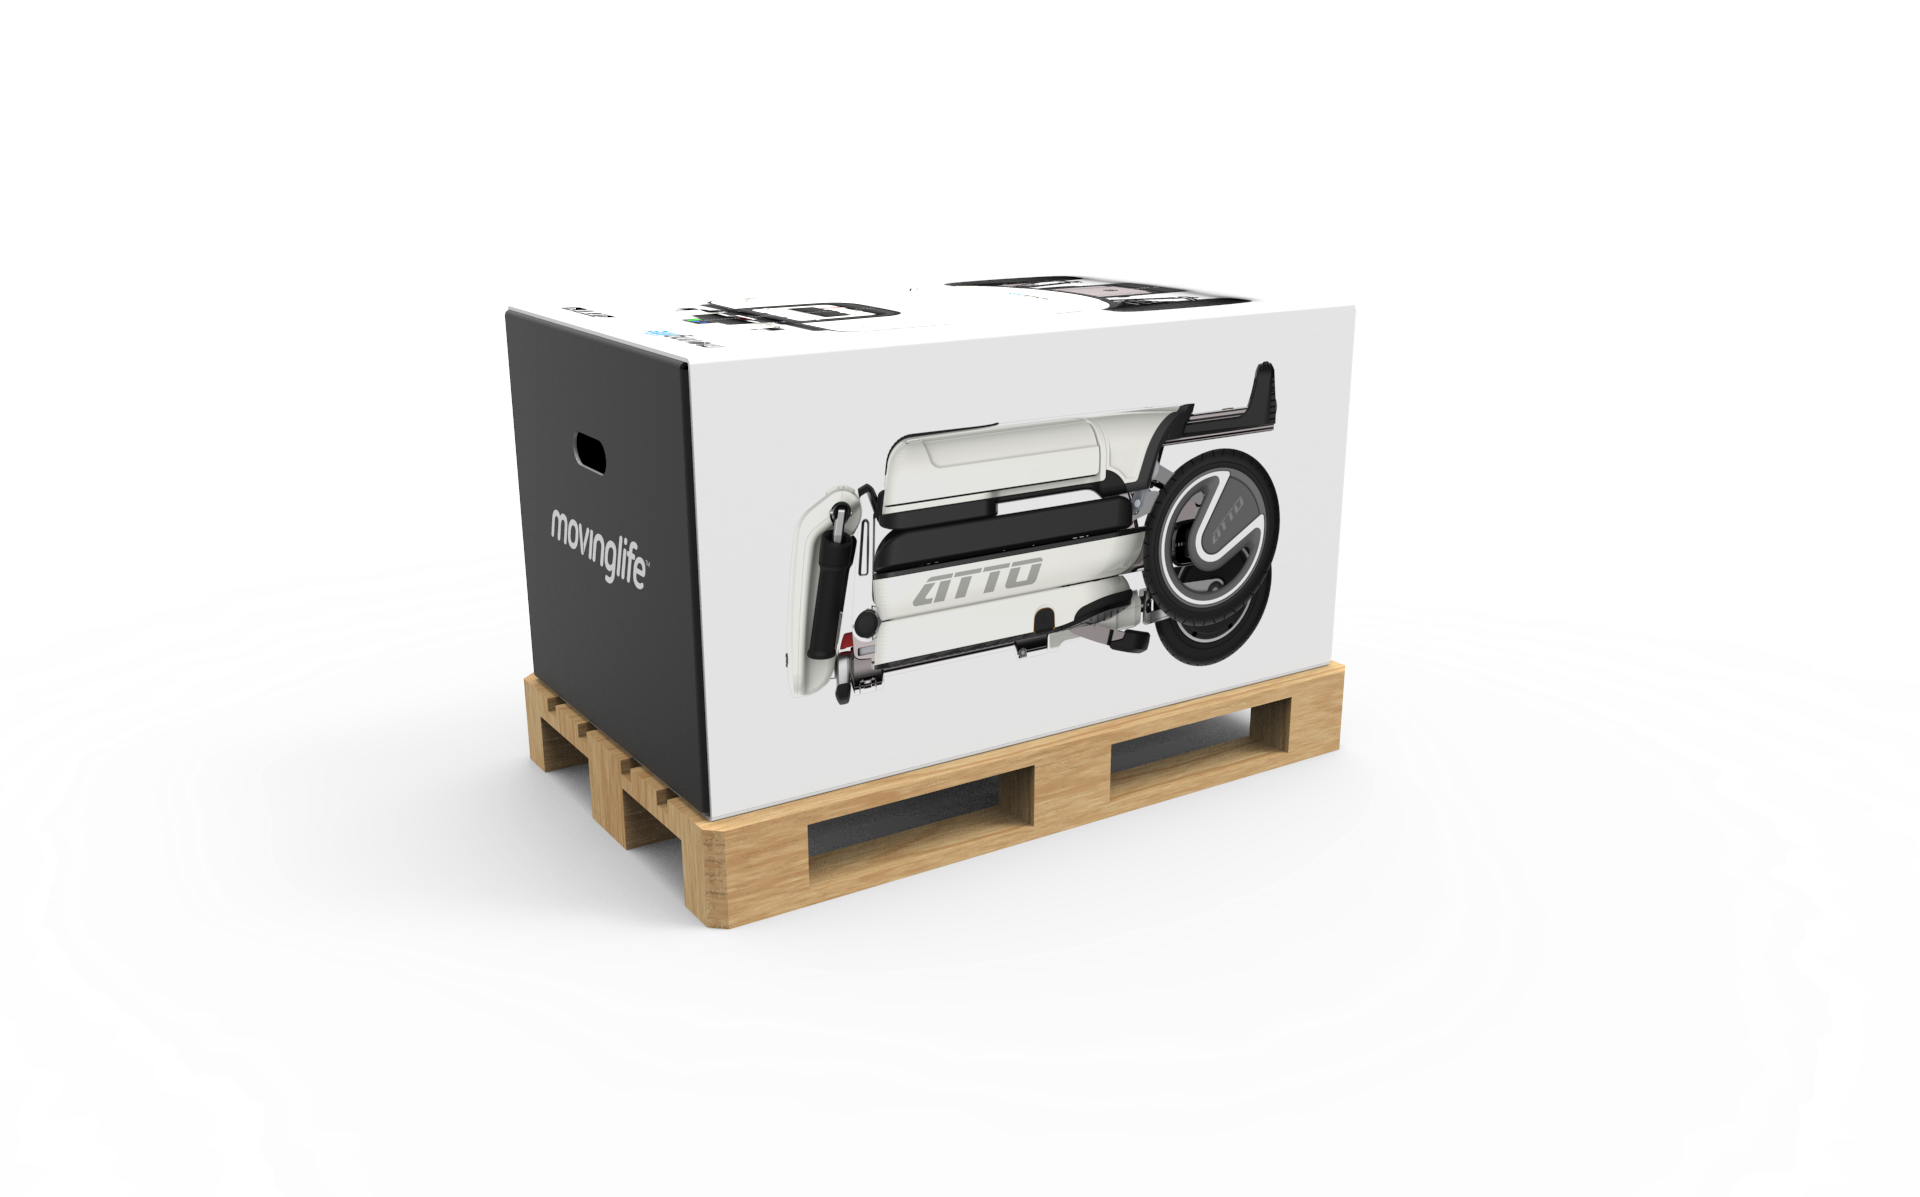 ATTO Mobility Scooter in the box